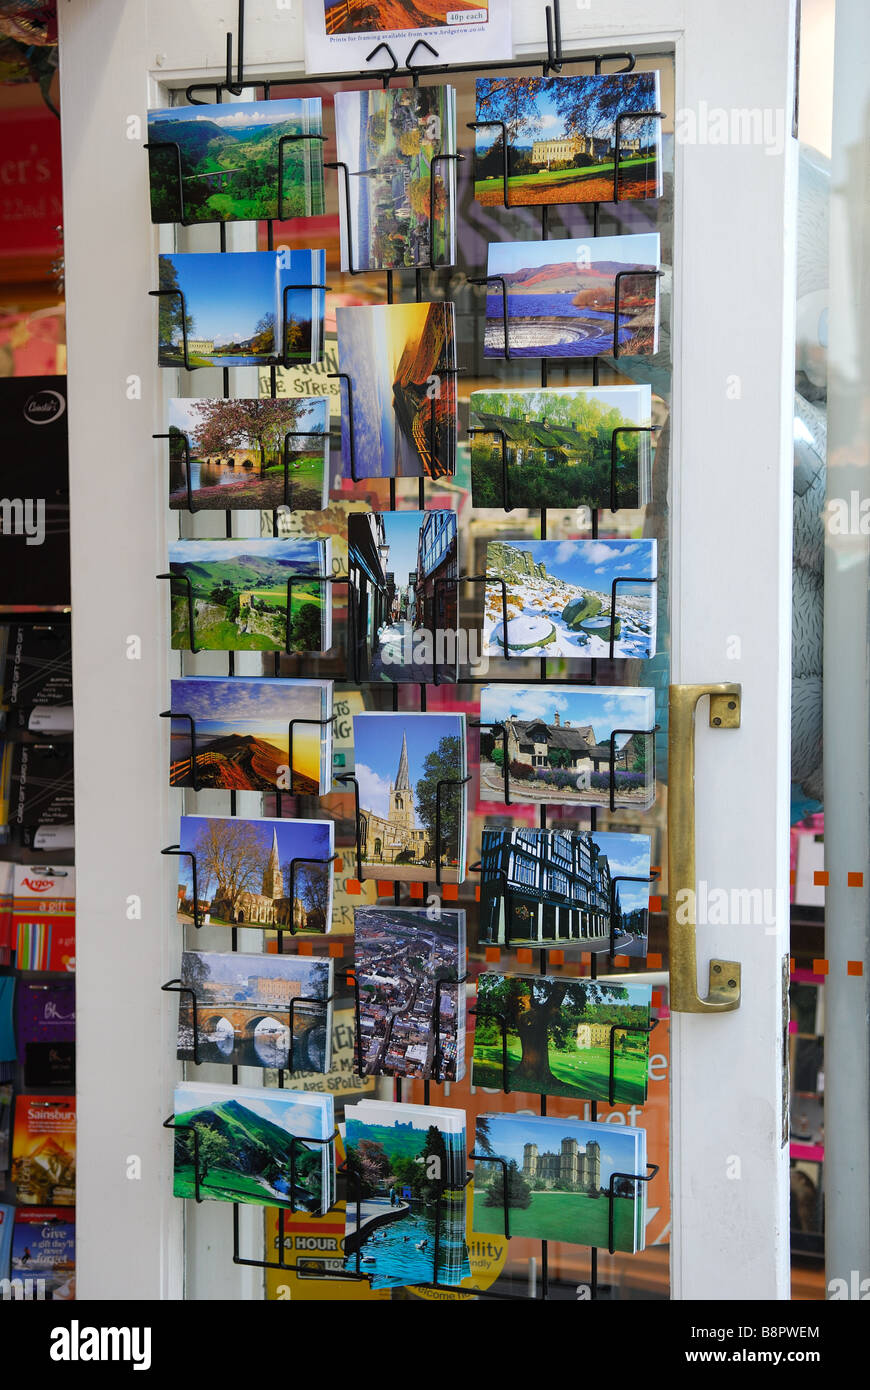 Chesterfield, Postcards For Sale. - Stock Image